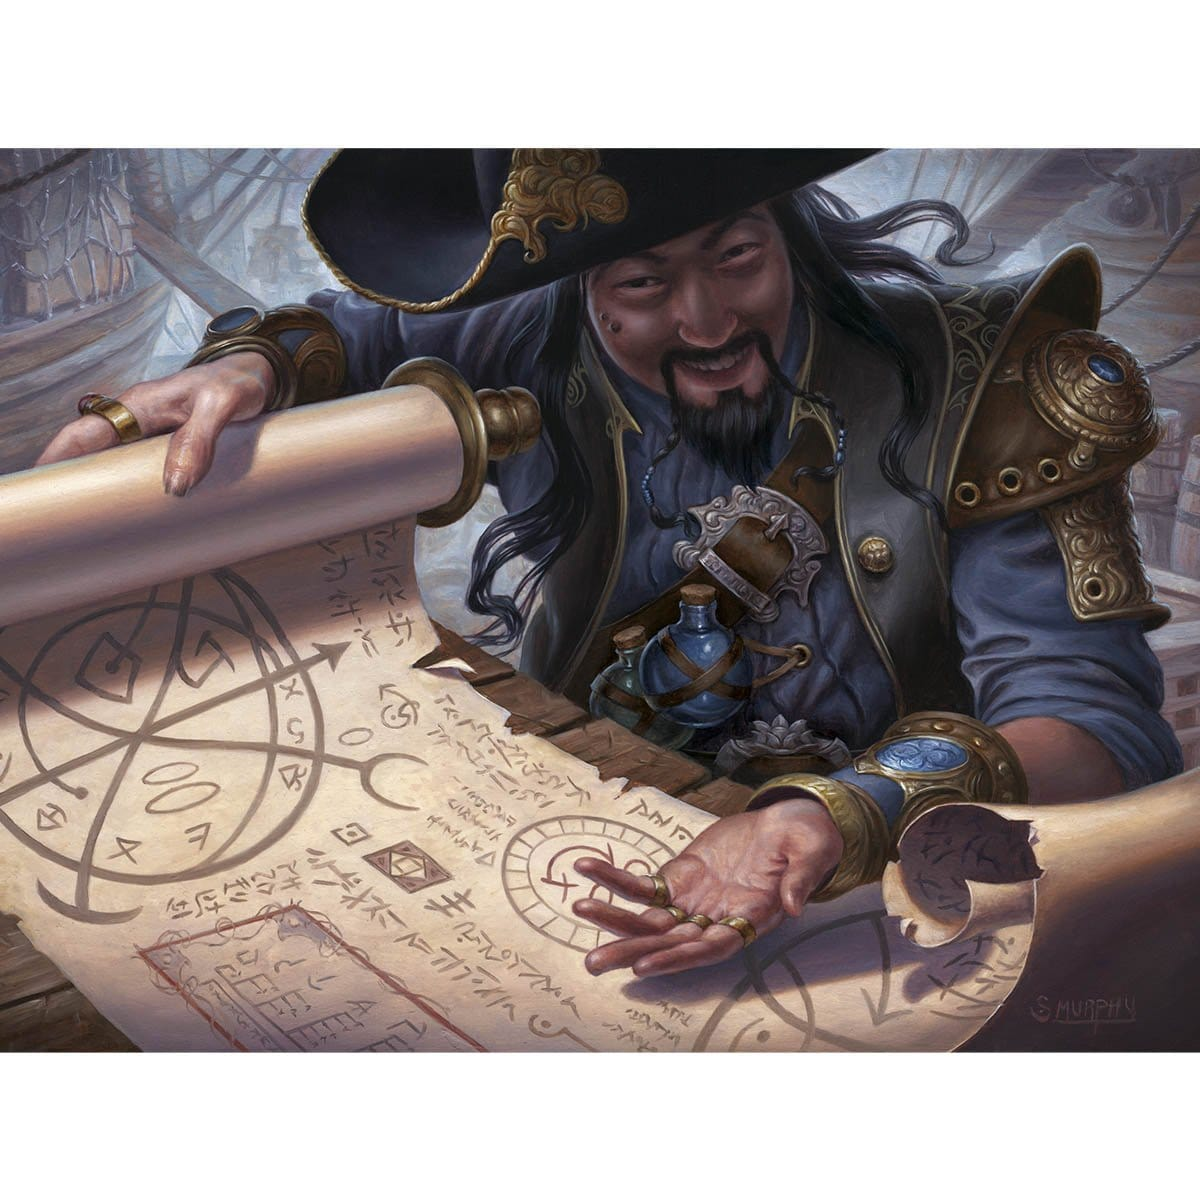 Merchant Scroll Print - Print - Original Magic Art - Accessories for Magic the Gathering and other card games